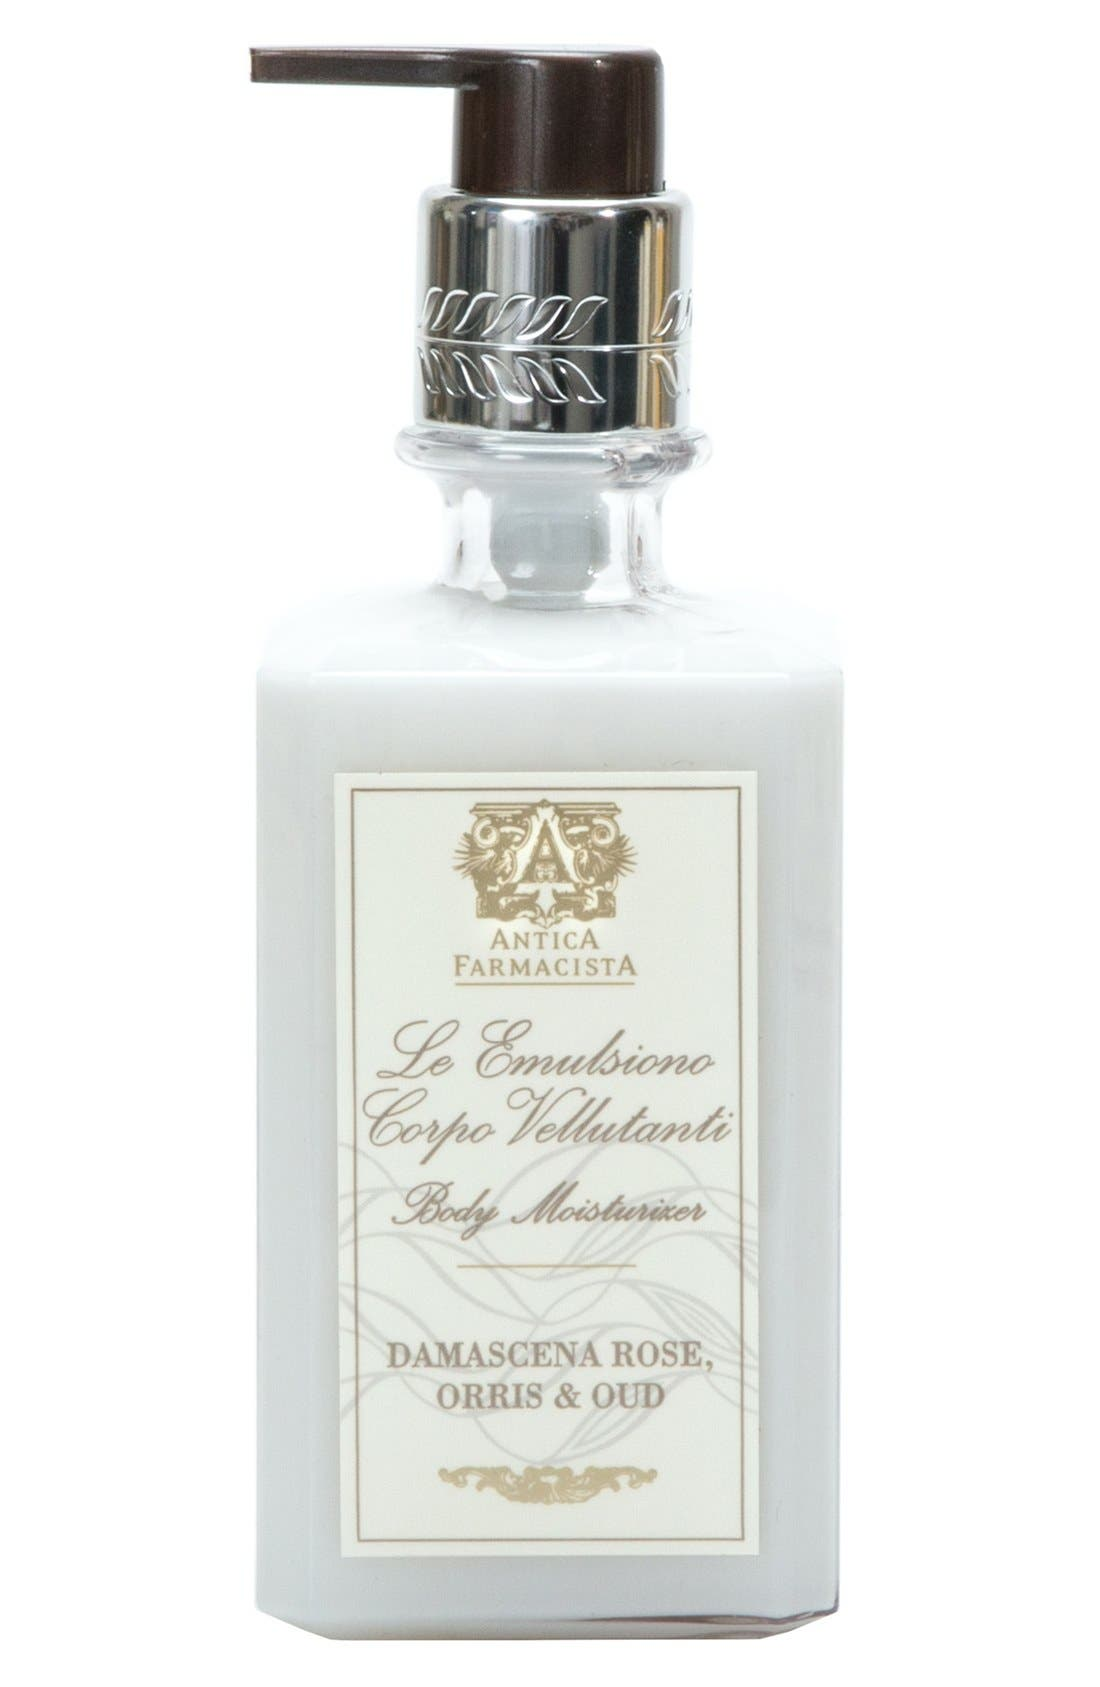 Antica Farmacista 'Damascena Rose, Orris & Oud' Body Moisturizer